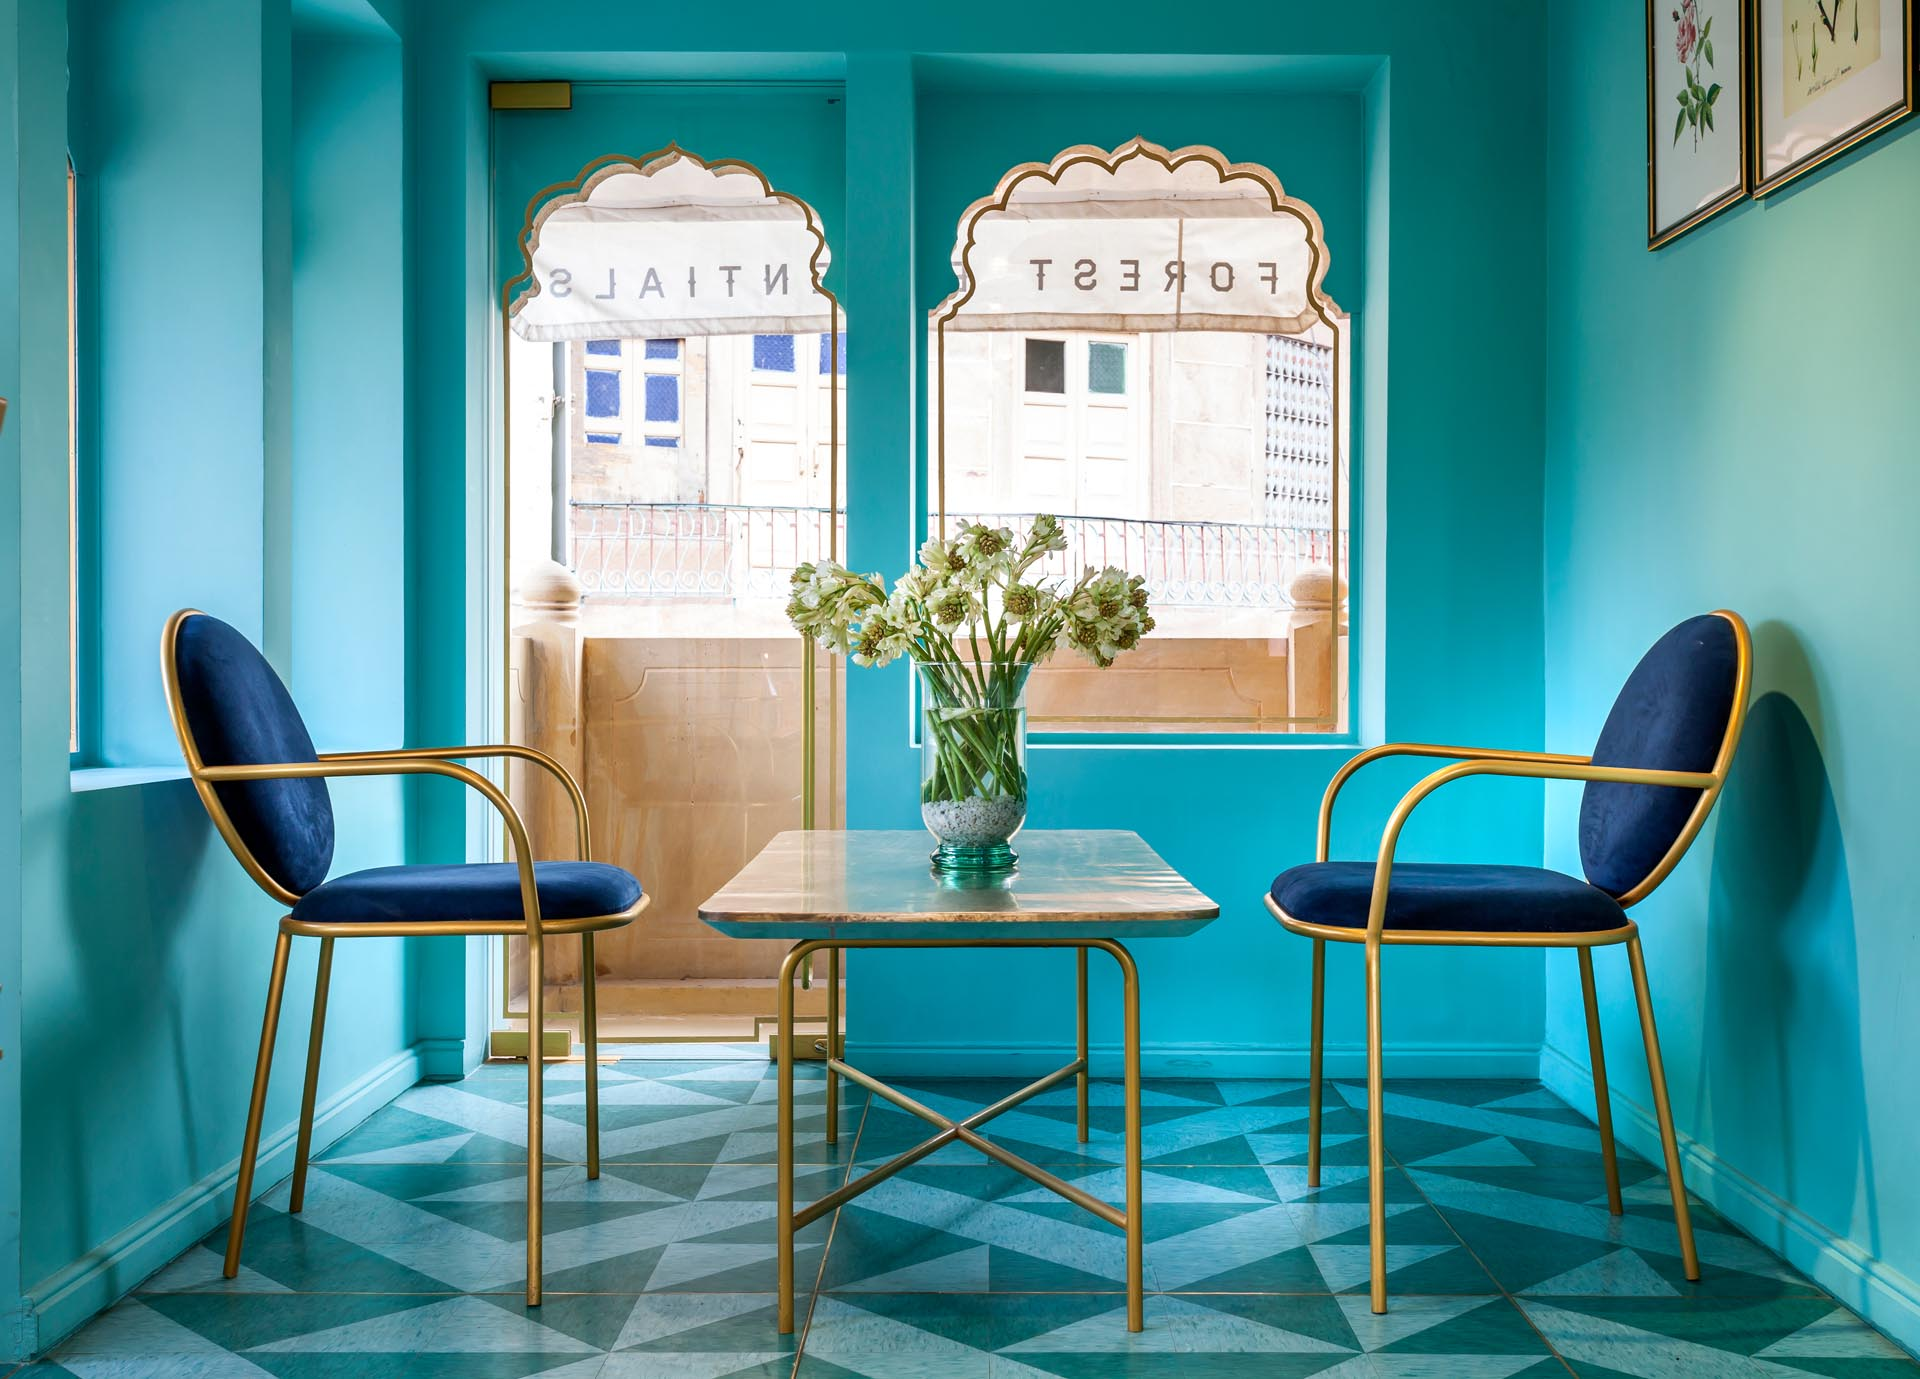 A modern retail store with teal walls, velvet chairs, and gold accents.